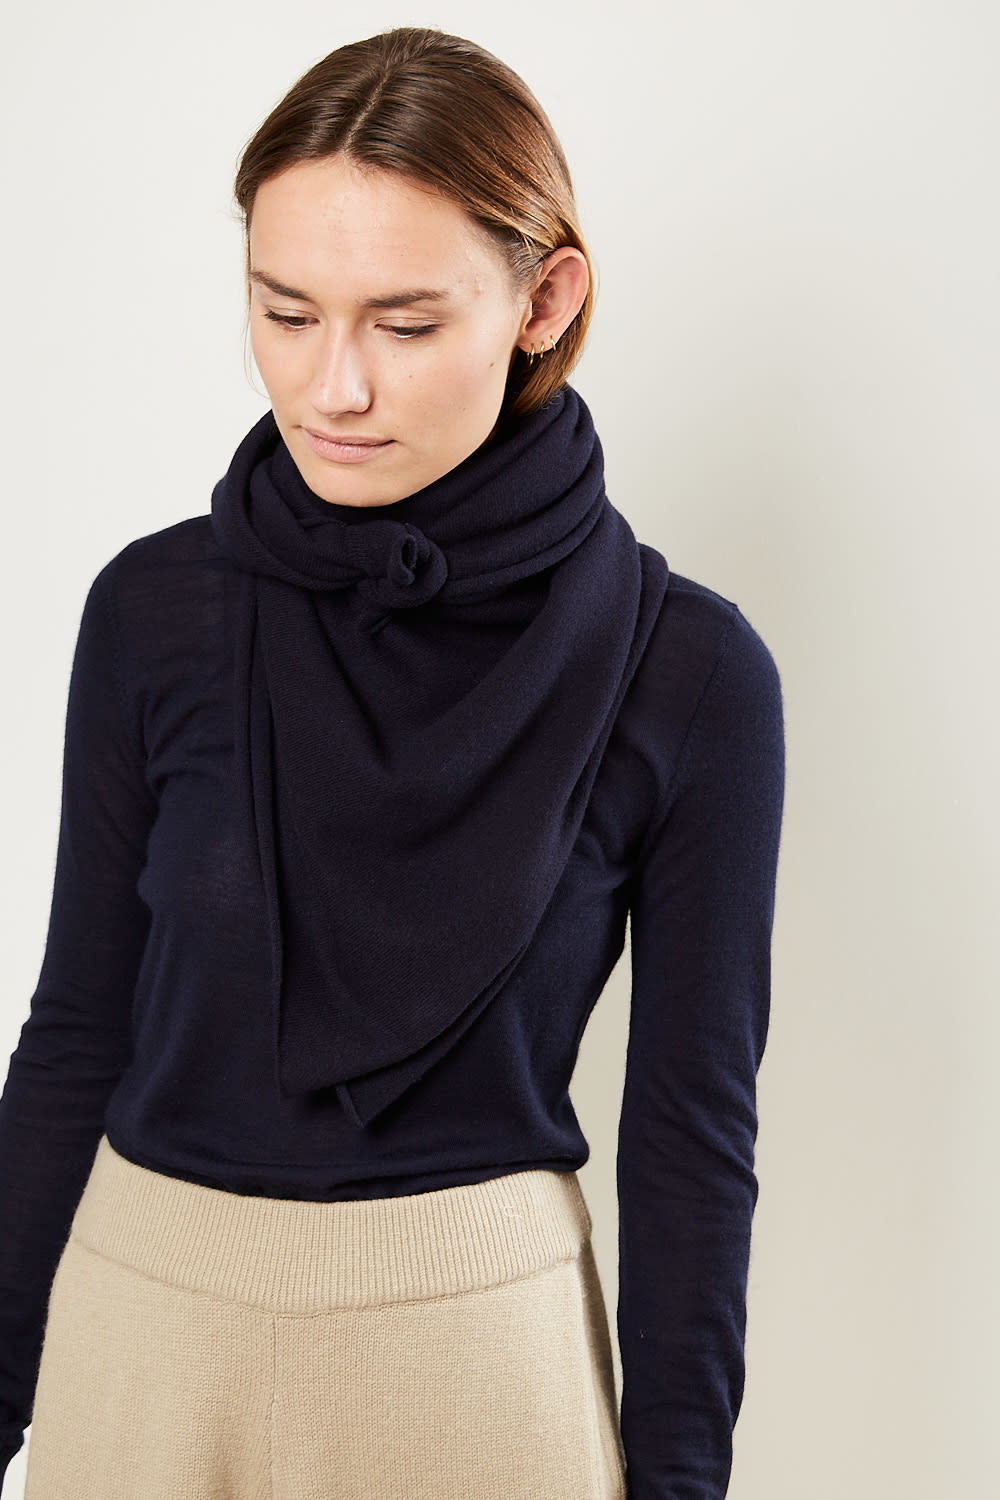 extreme cashmere No111 carre square scarf navy